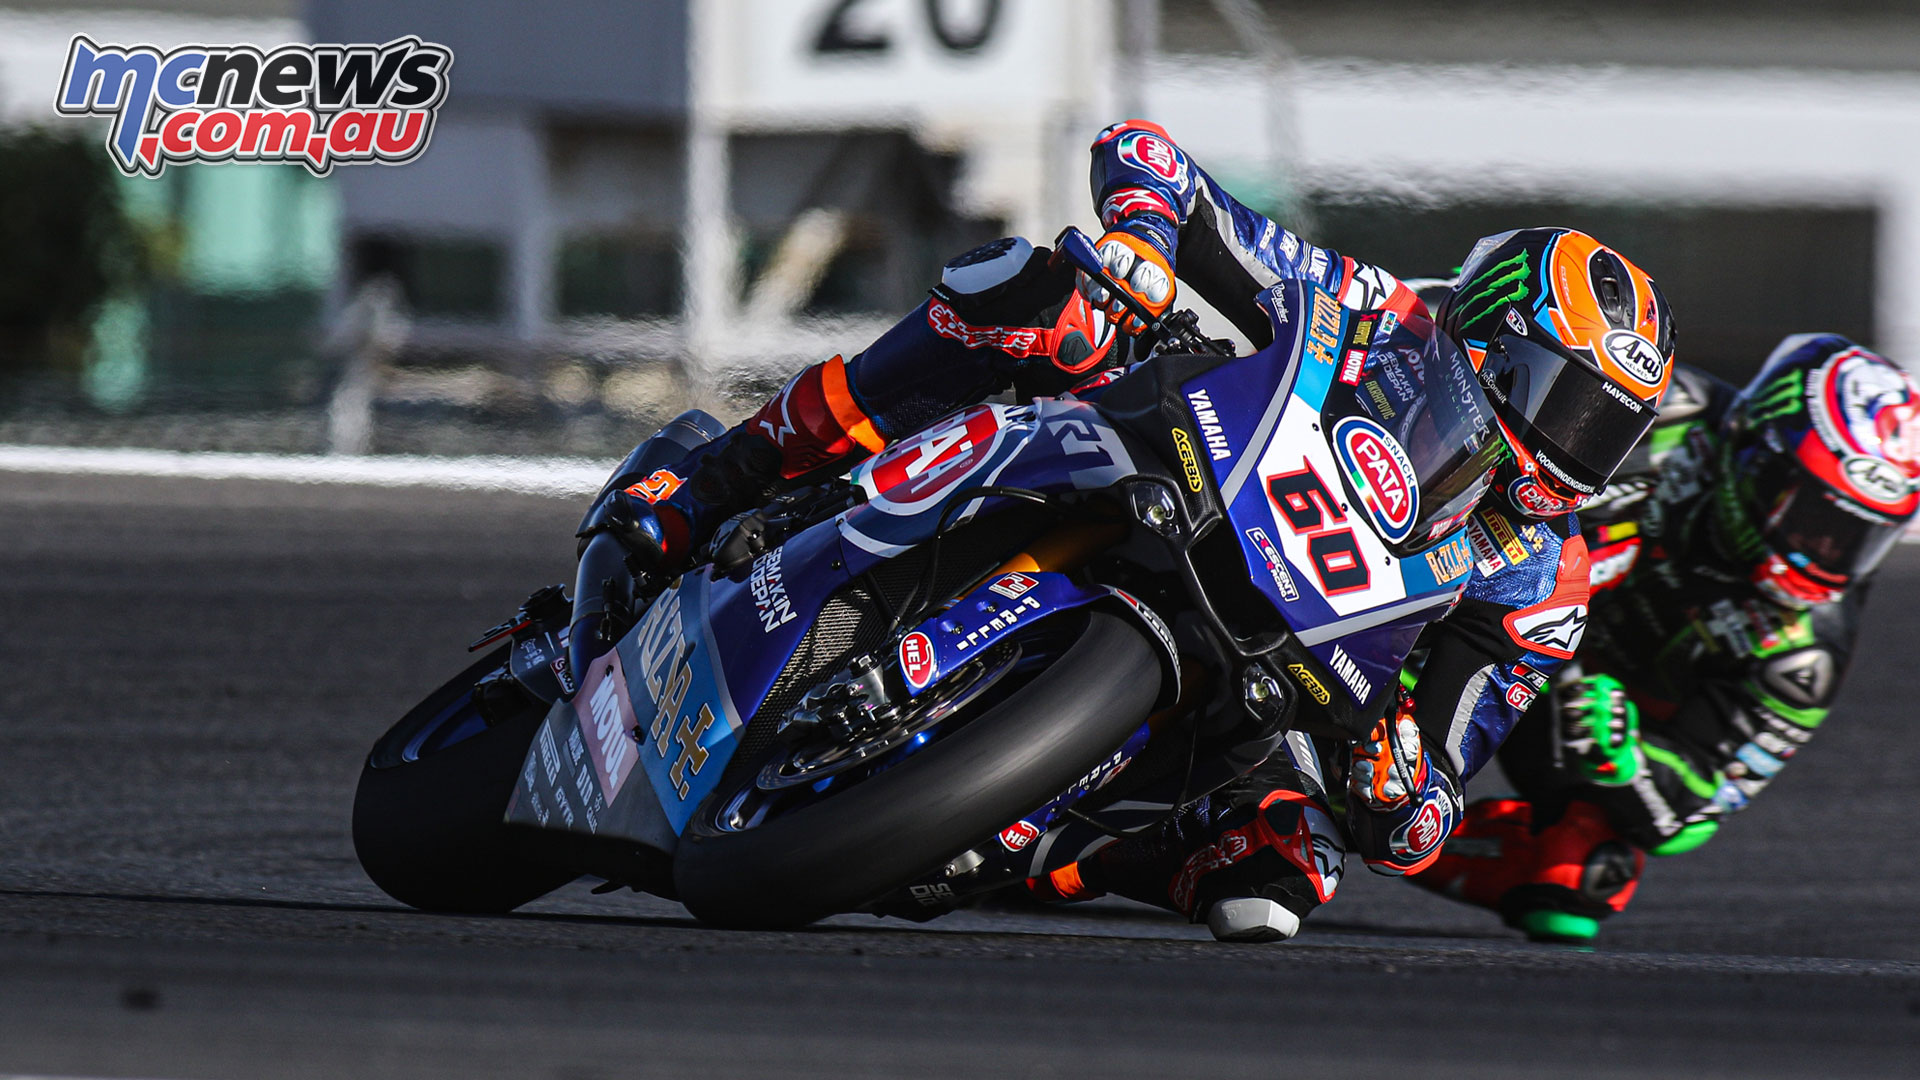 WorldSBK POR DWO Test Day WorldSBK FP Action VdMark